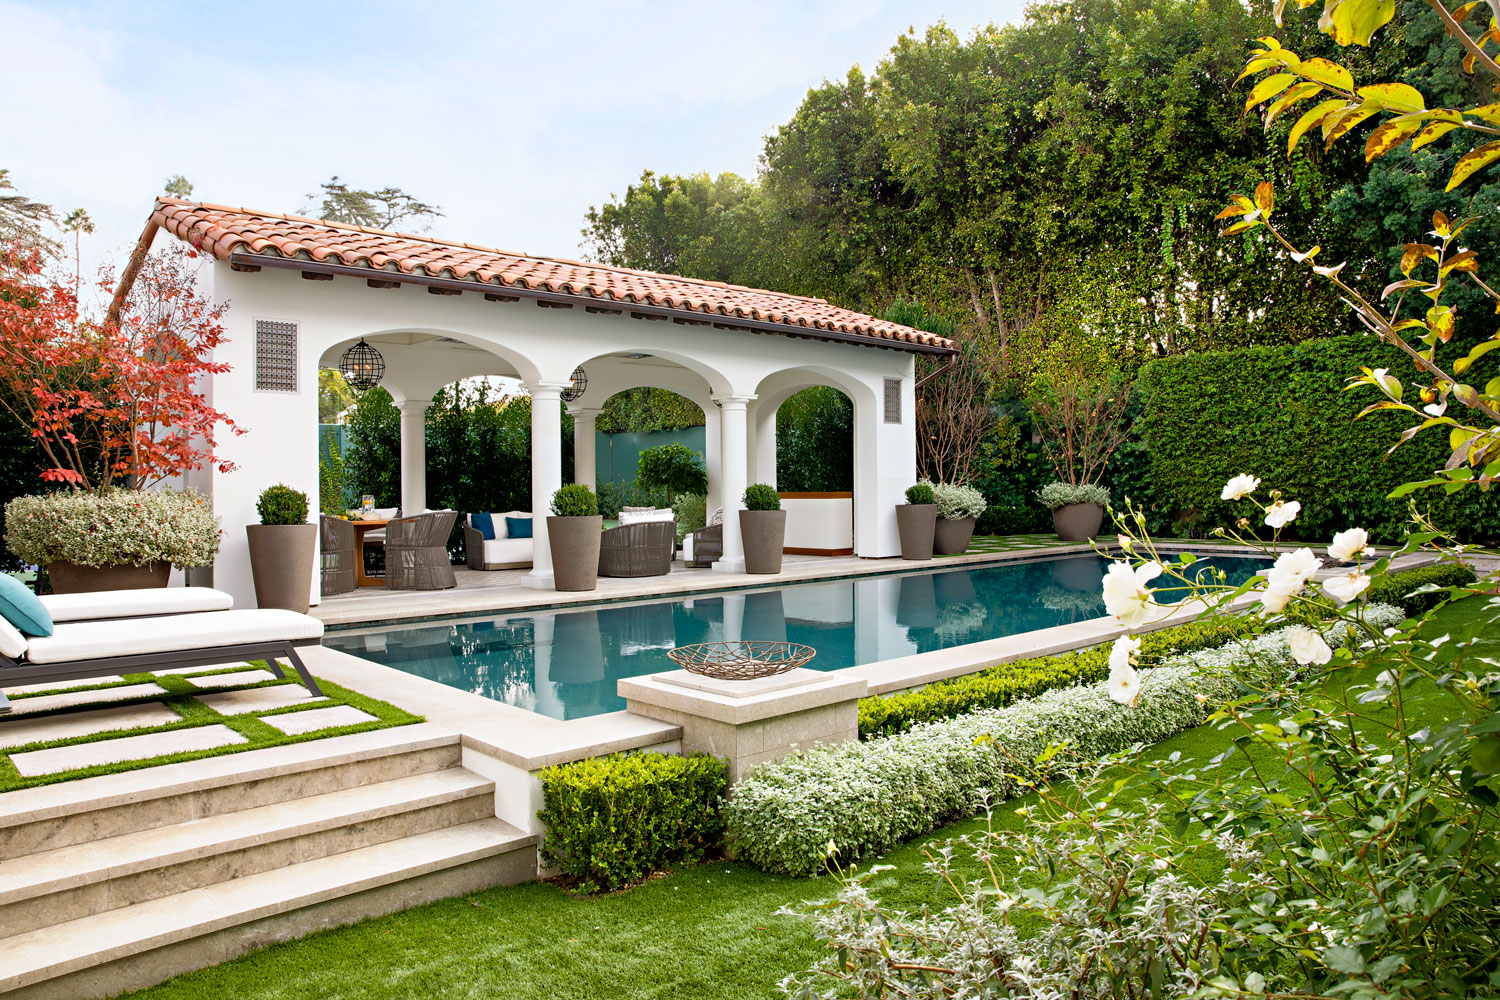 27-pool-cabana-outdoor-living-seating-gary-drake-general-contractor.jpg